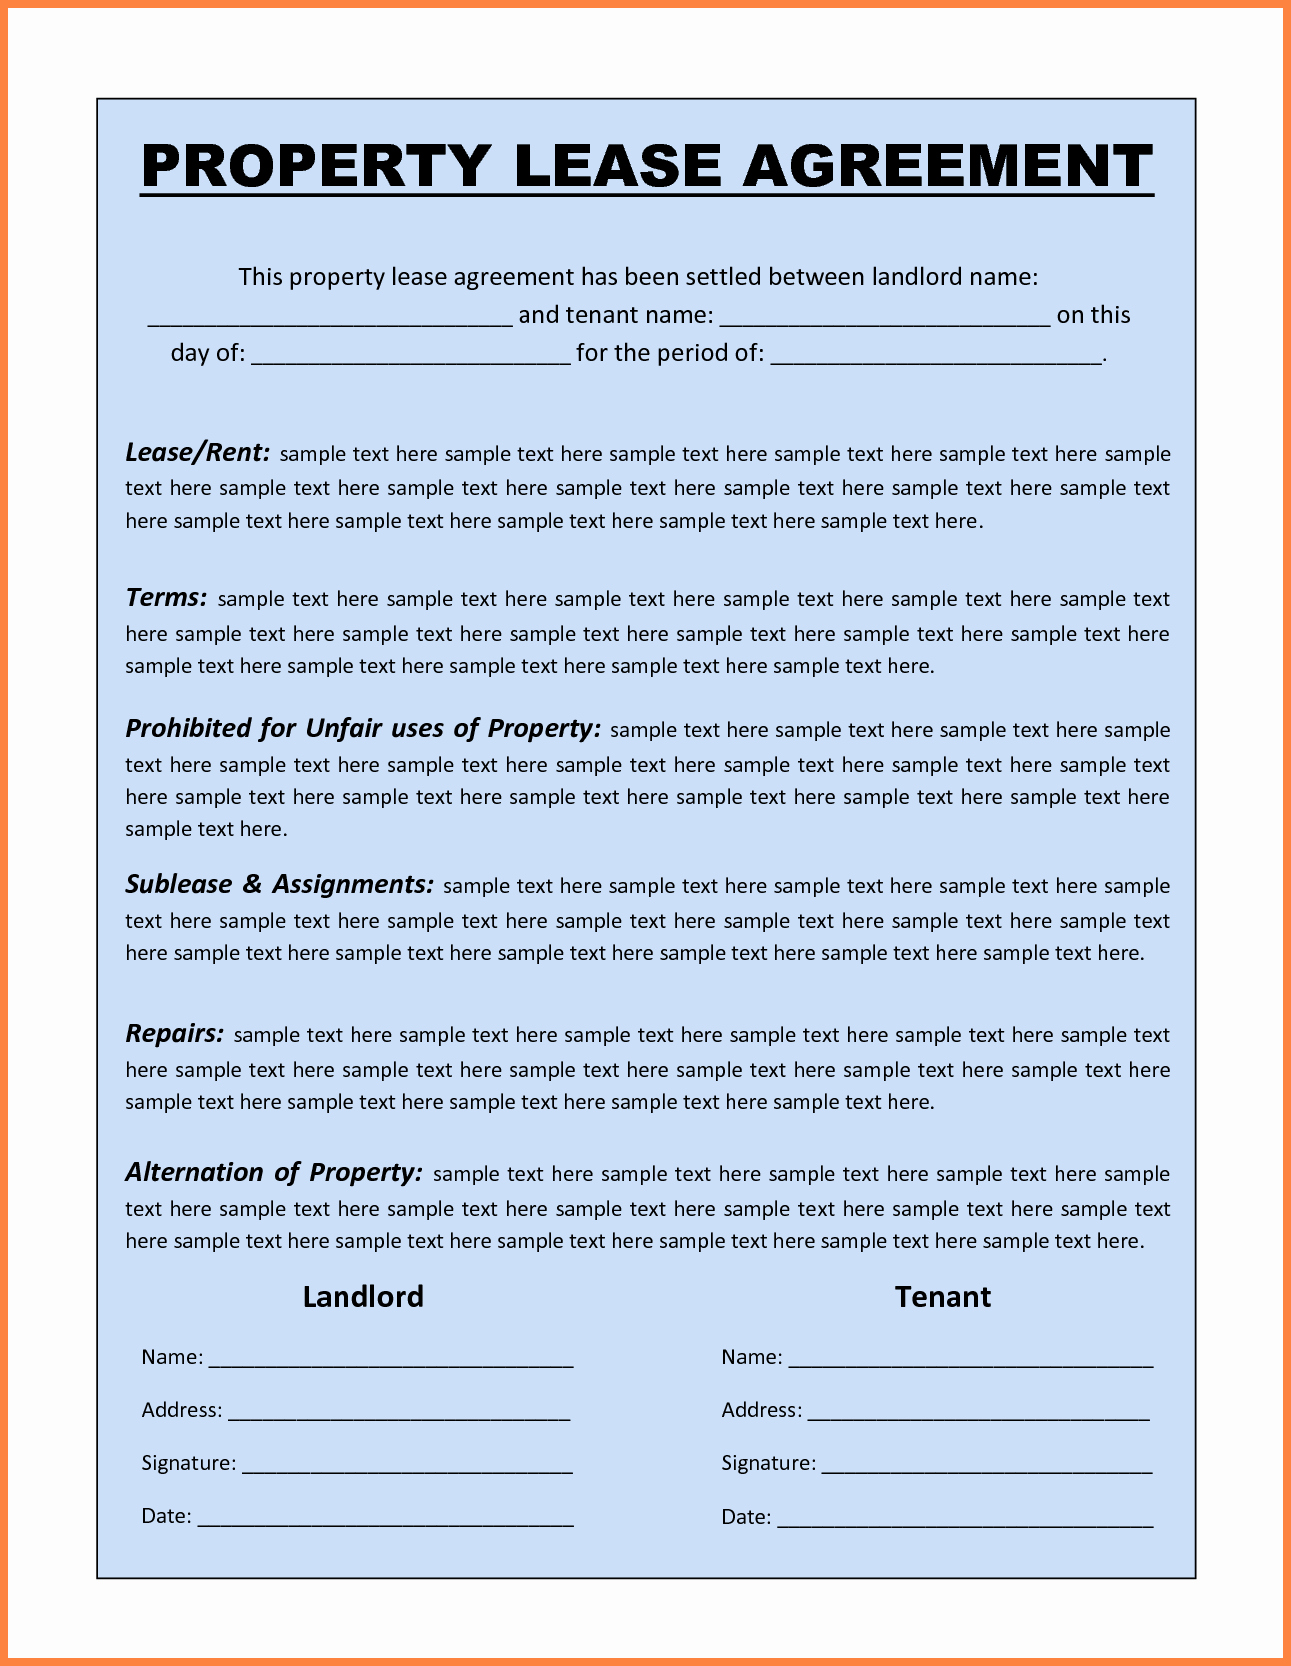 Equipment Lease Agreement Template Word Inspirational 13 Mercial Lease Agreement Template Word